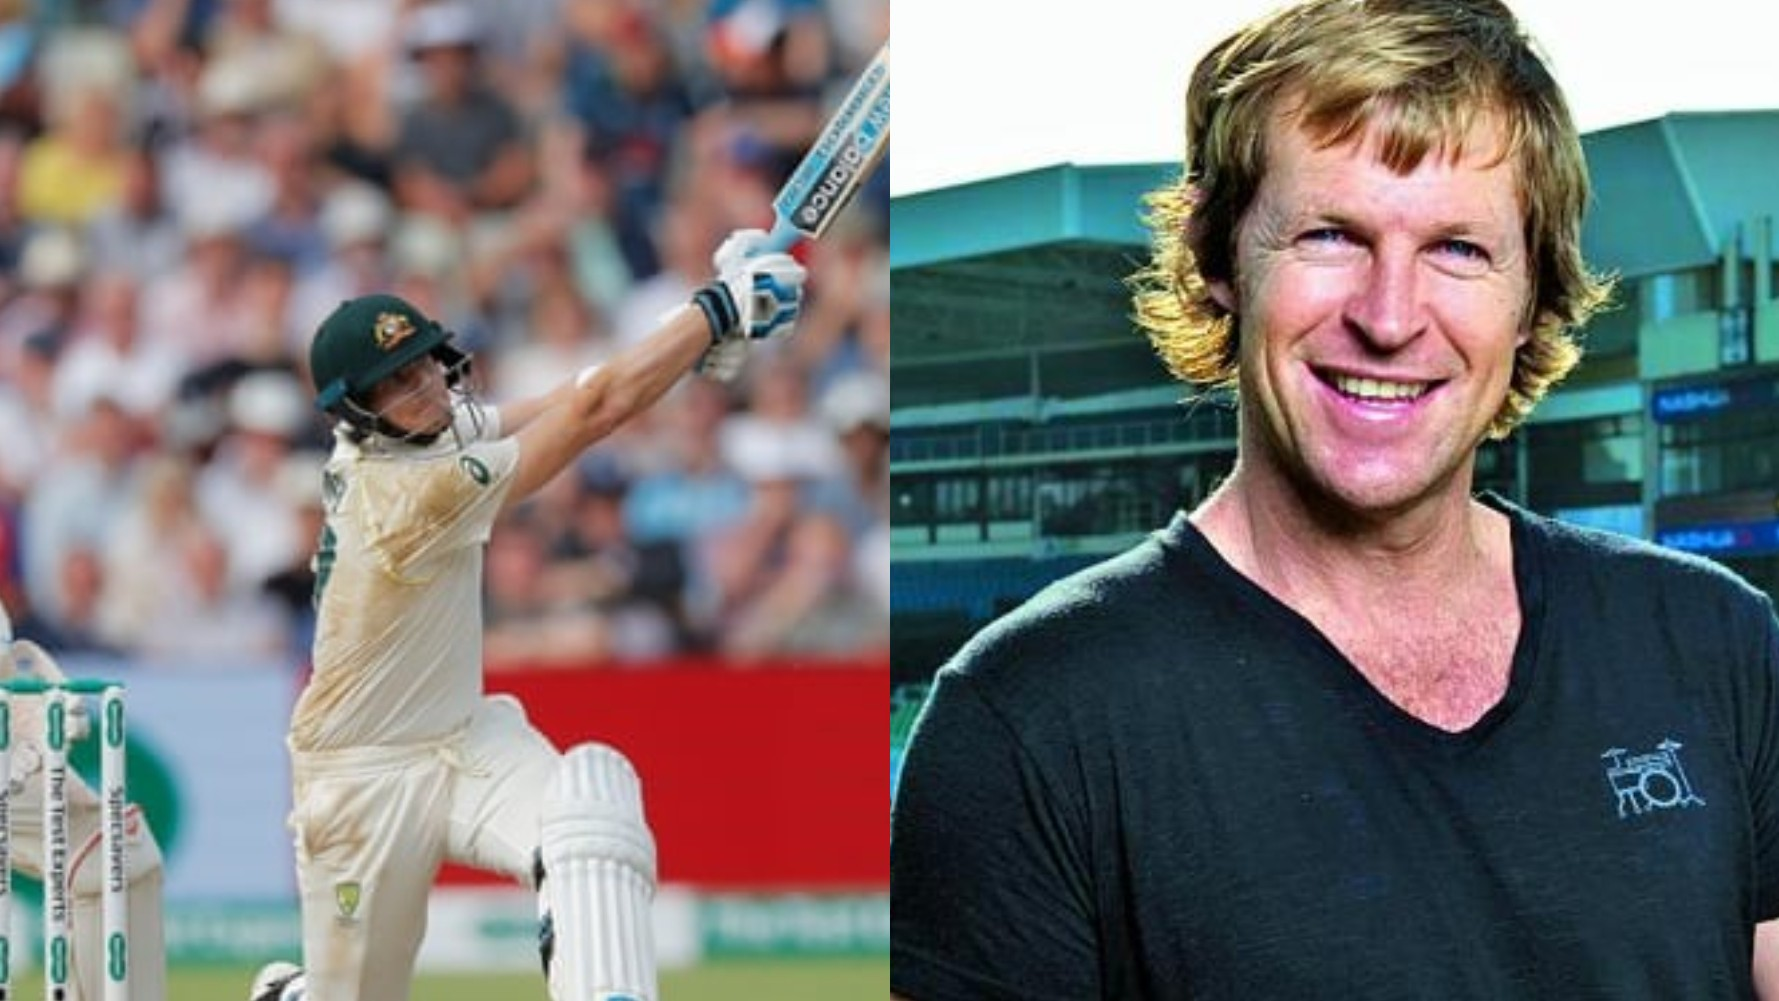 Jonty Rhodes defends his criticism of Steve Smith's unconventional batting style in his own way